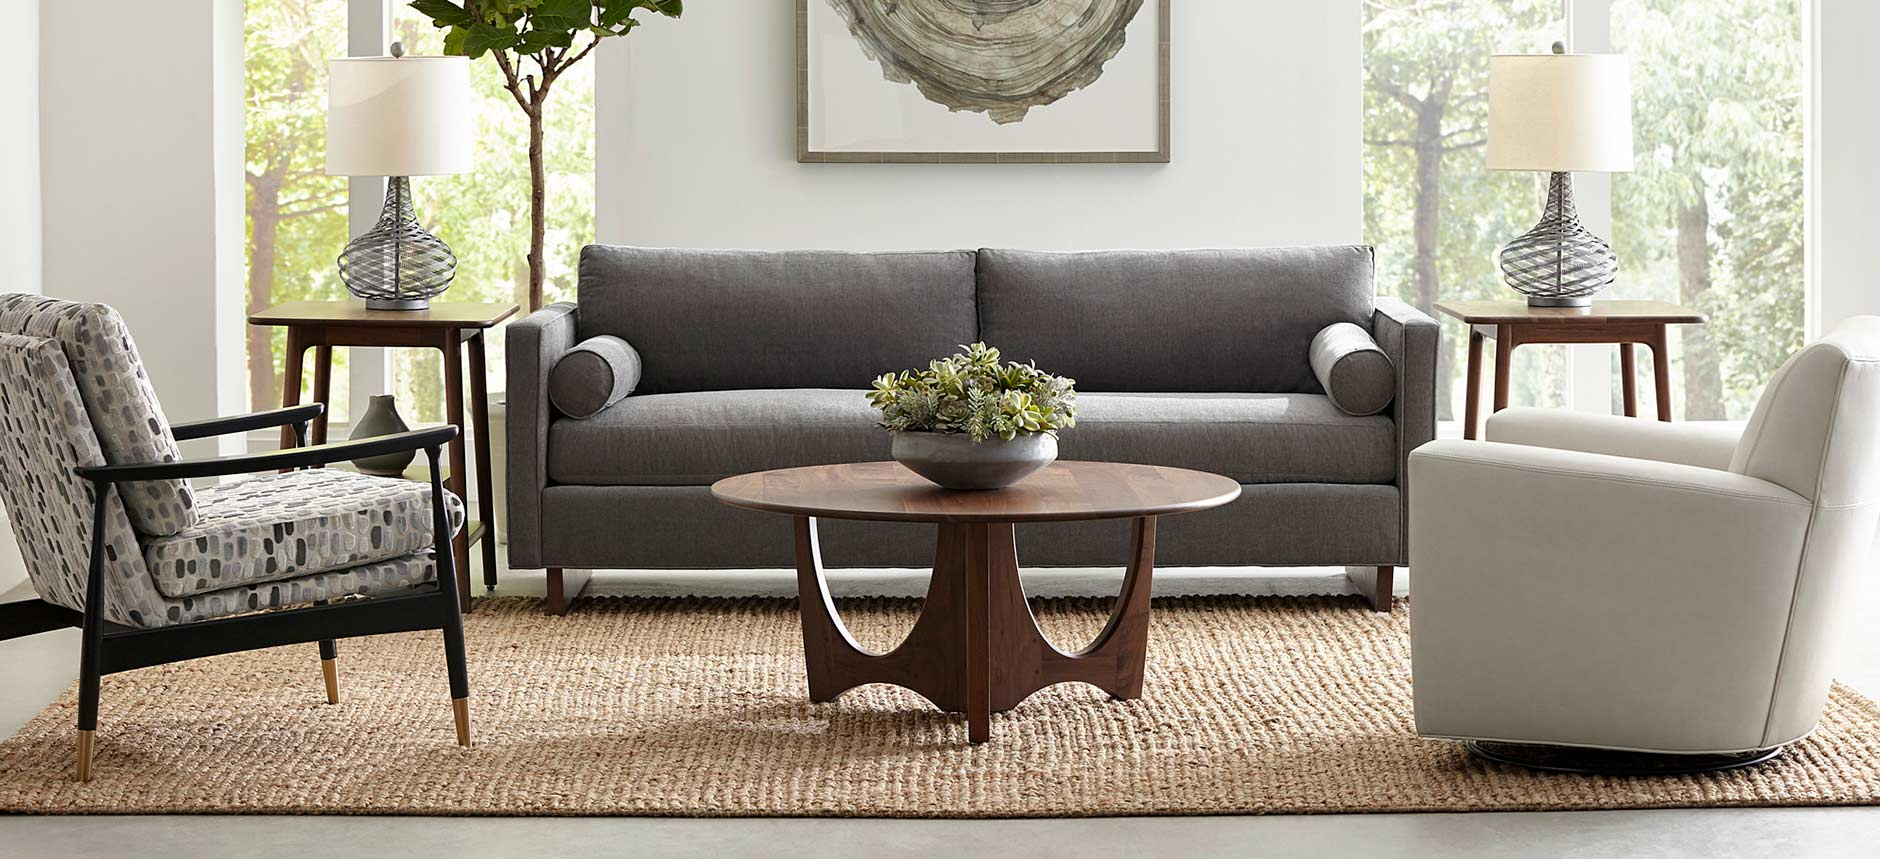 Stickley Paxton Sofa - Walnut Grove Collection